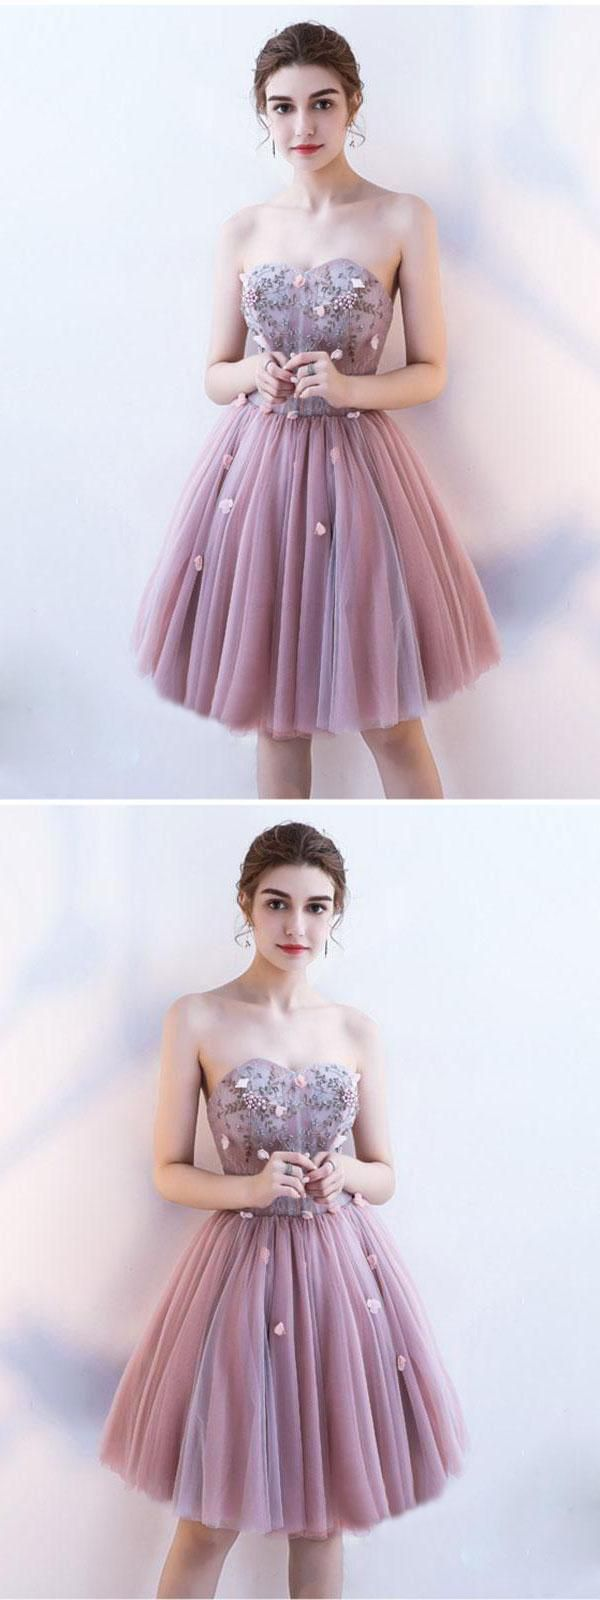 Outstanding lace prom dresses short prom dresses pink prom dresses